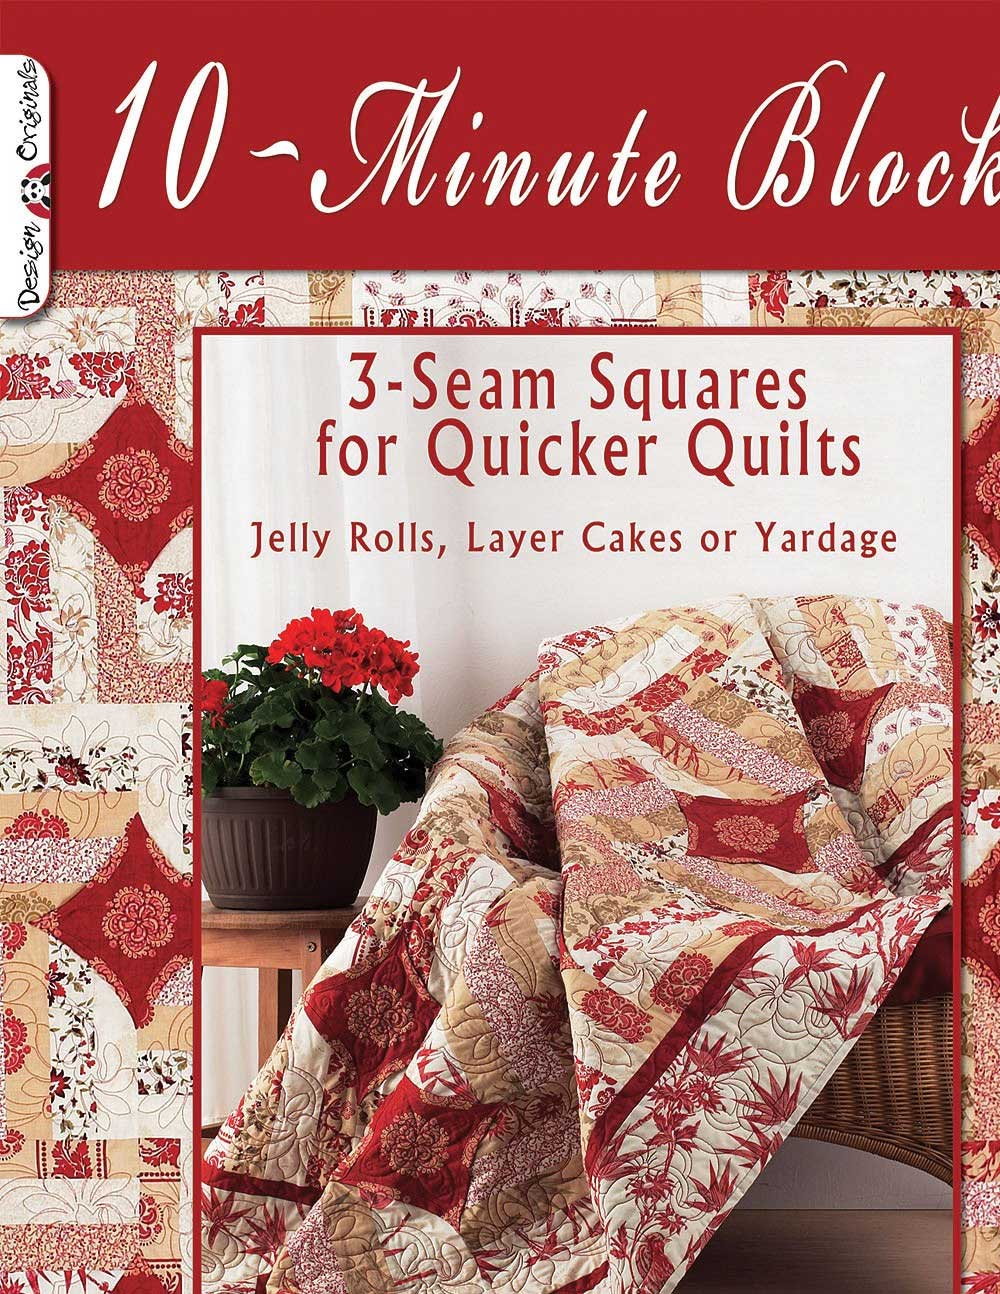 10-Minute Blocks - Quilting Book